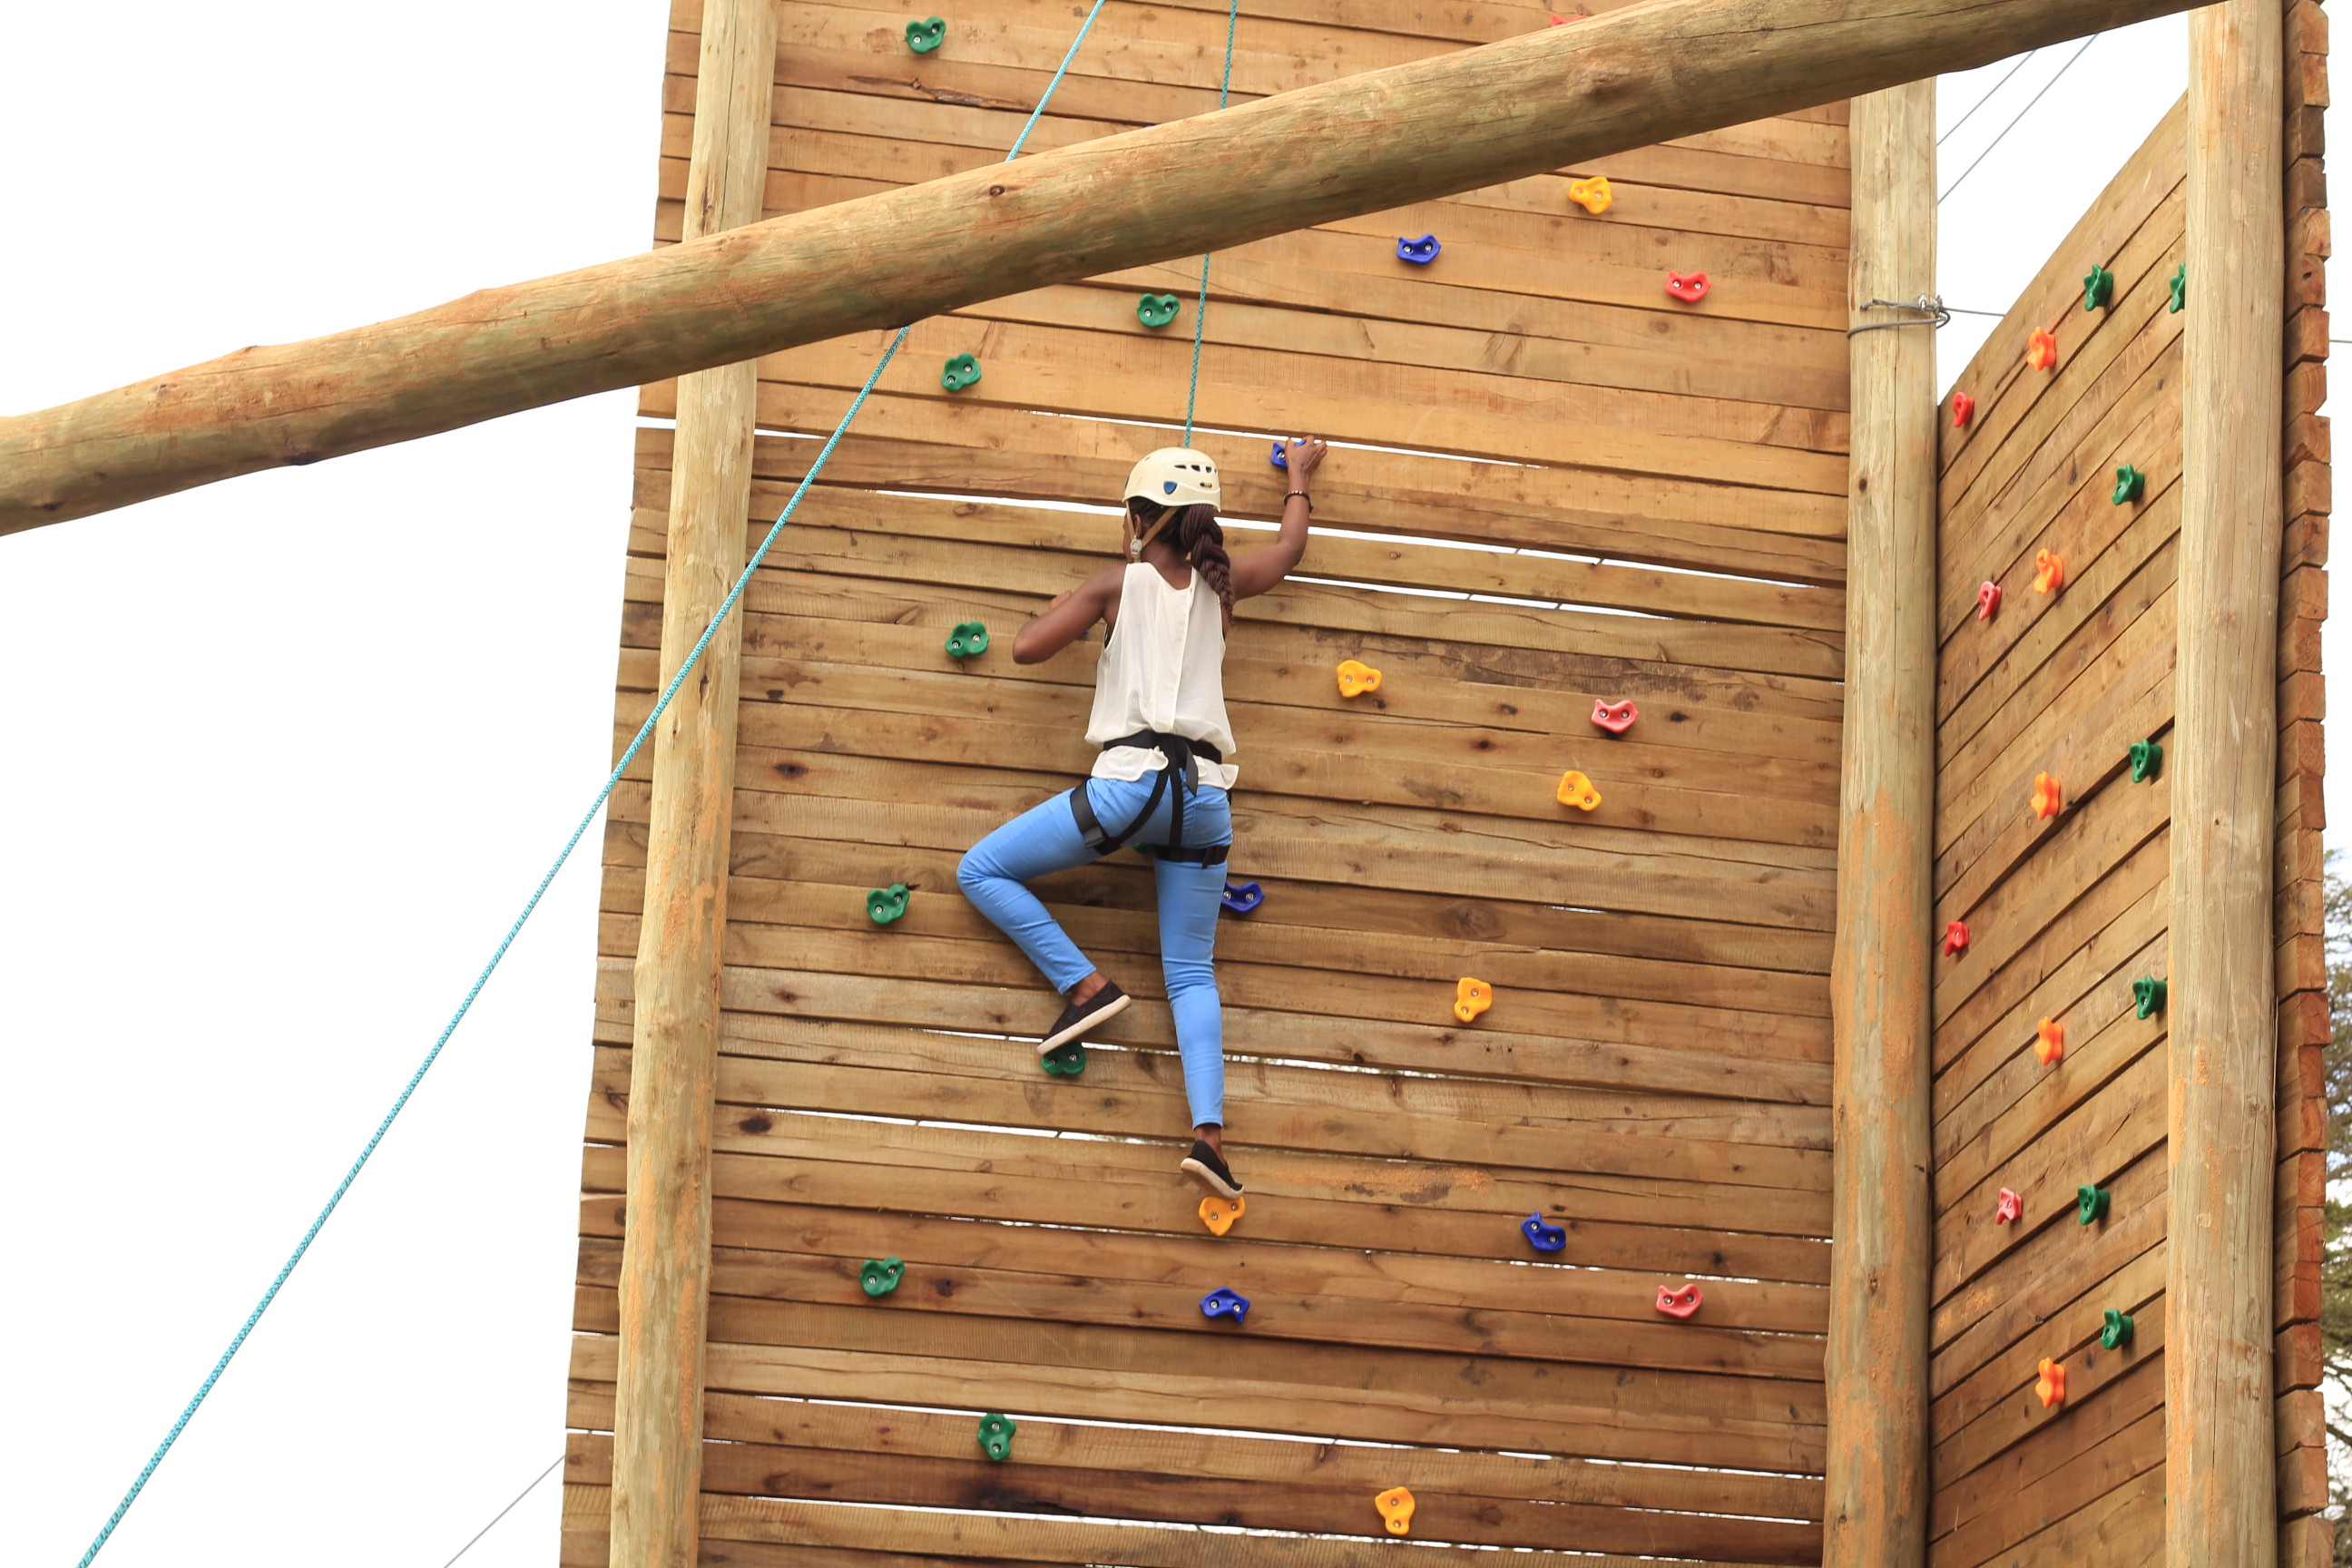 open-climbing-wall-pec